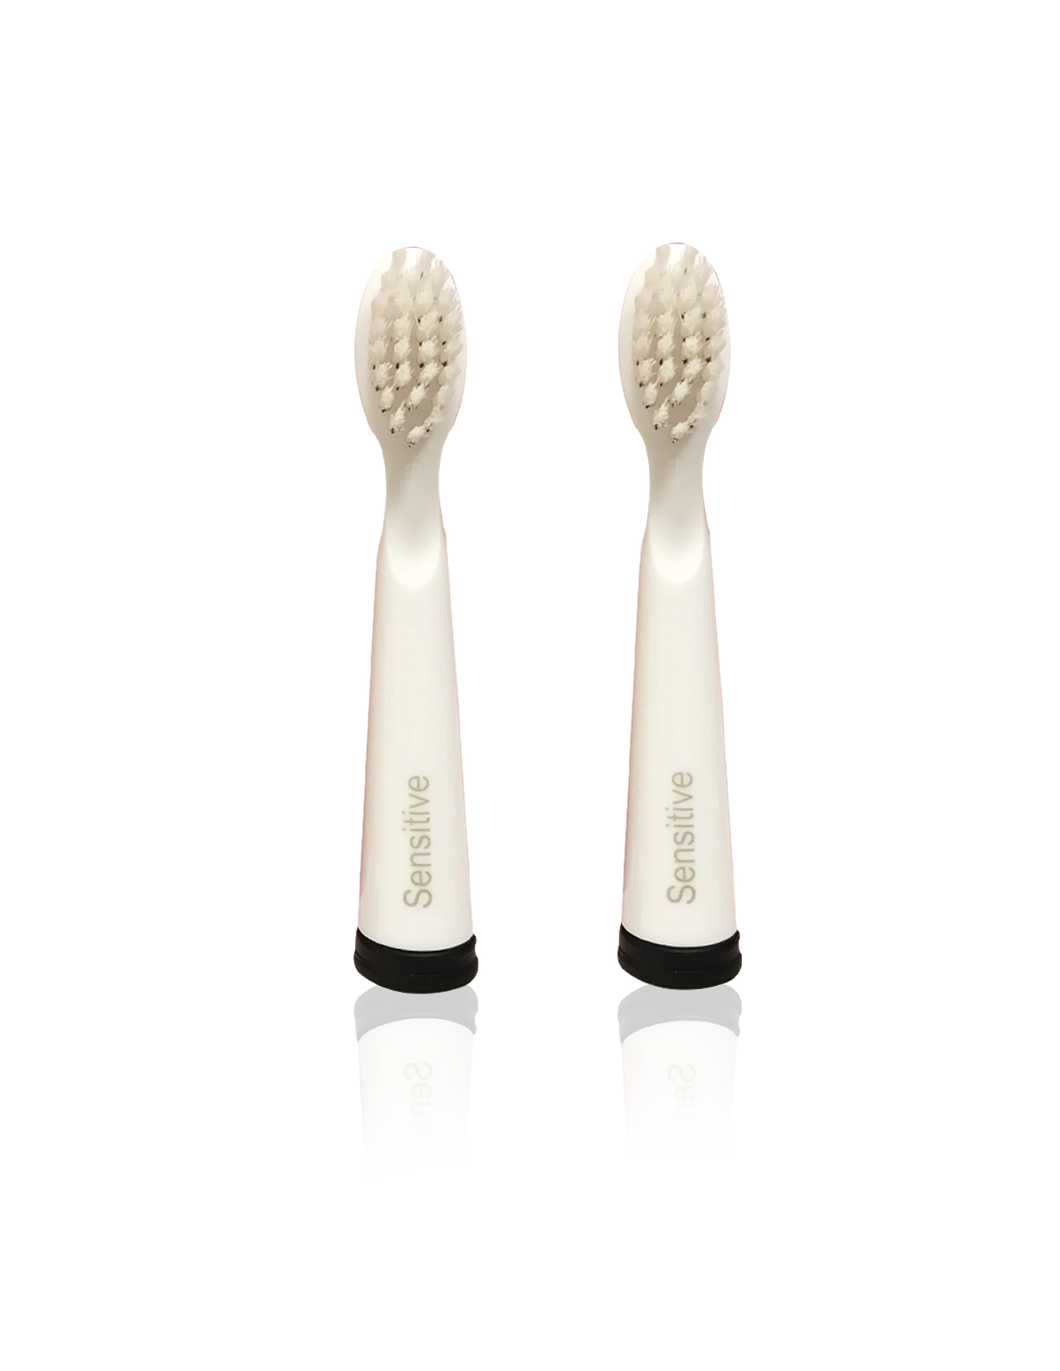 Soniclean Sensitive Replacement Brush Heads - (Pro 2000, 3000, 5000,CVS Pro Whitening, Pro White, Sonic Clean)